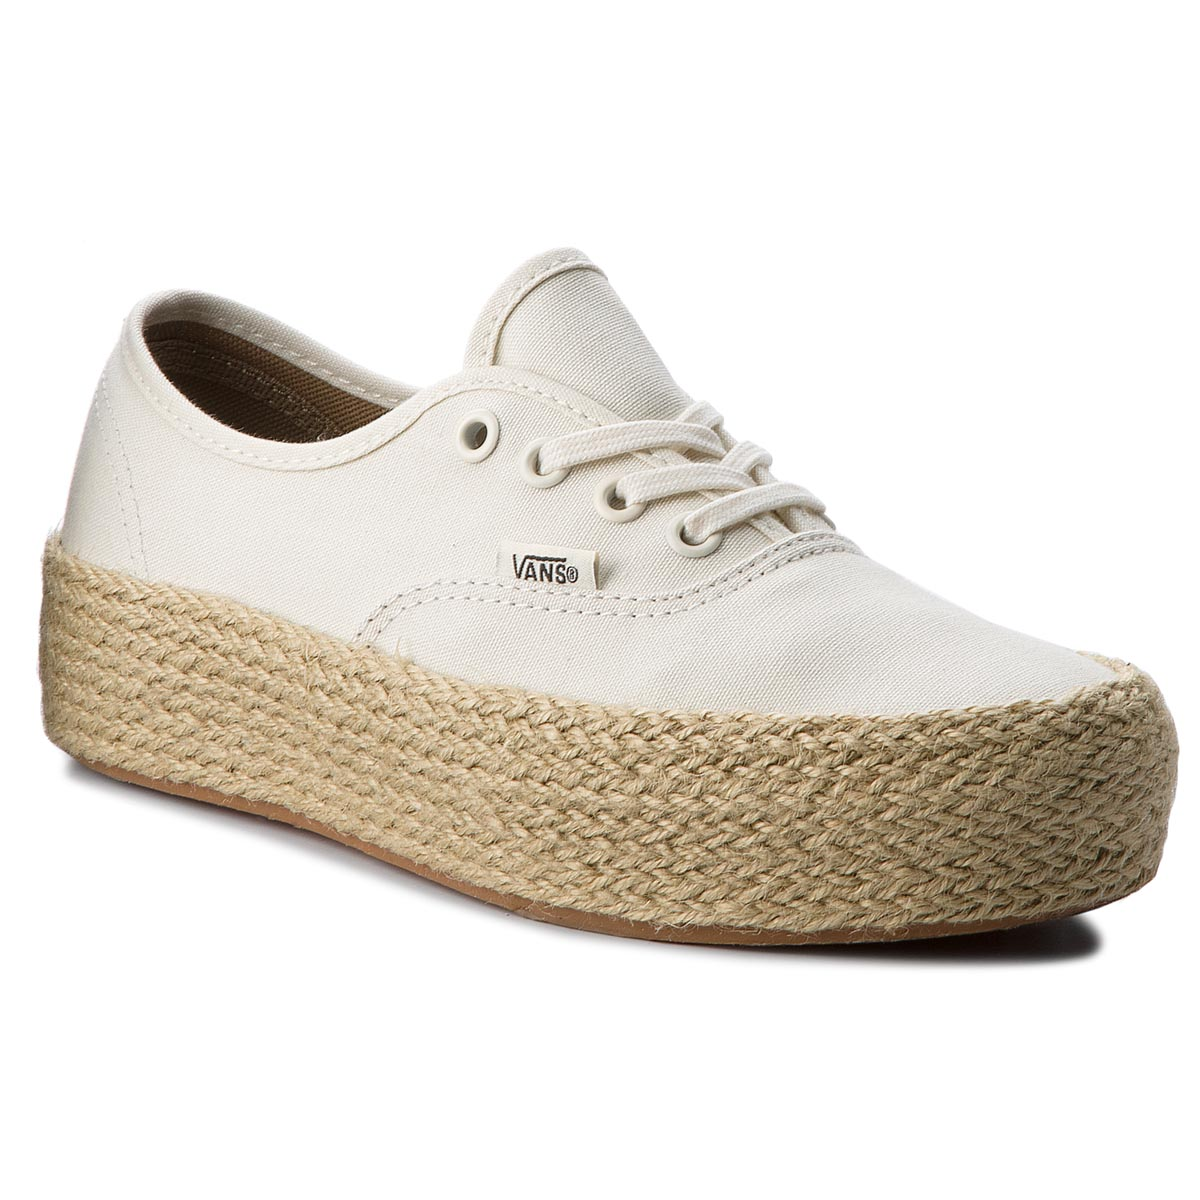 Espadrile VANS - Authentic Platfor VN0A3NAQFS8 Marshmallow